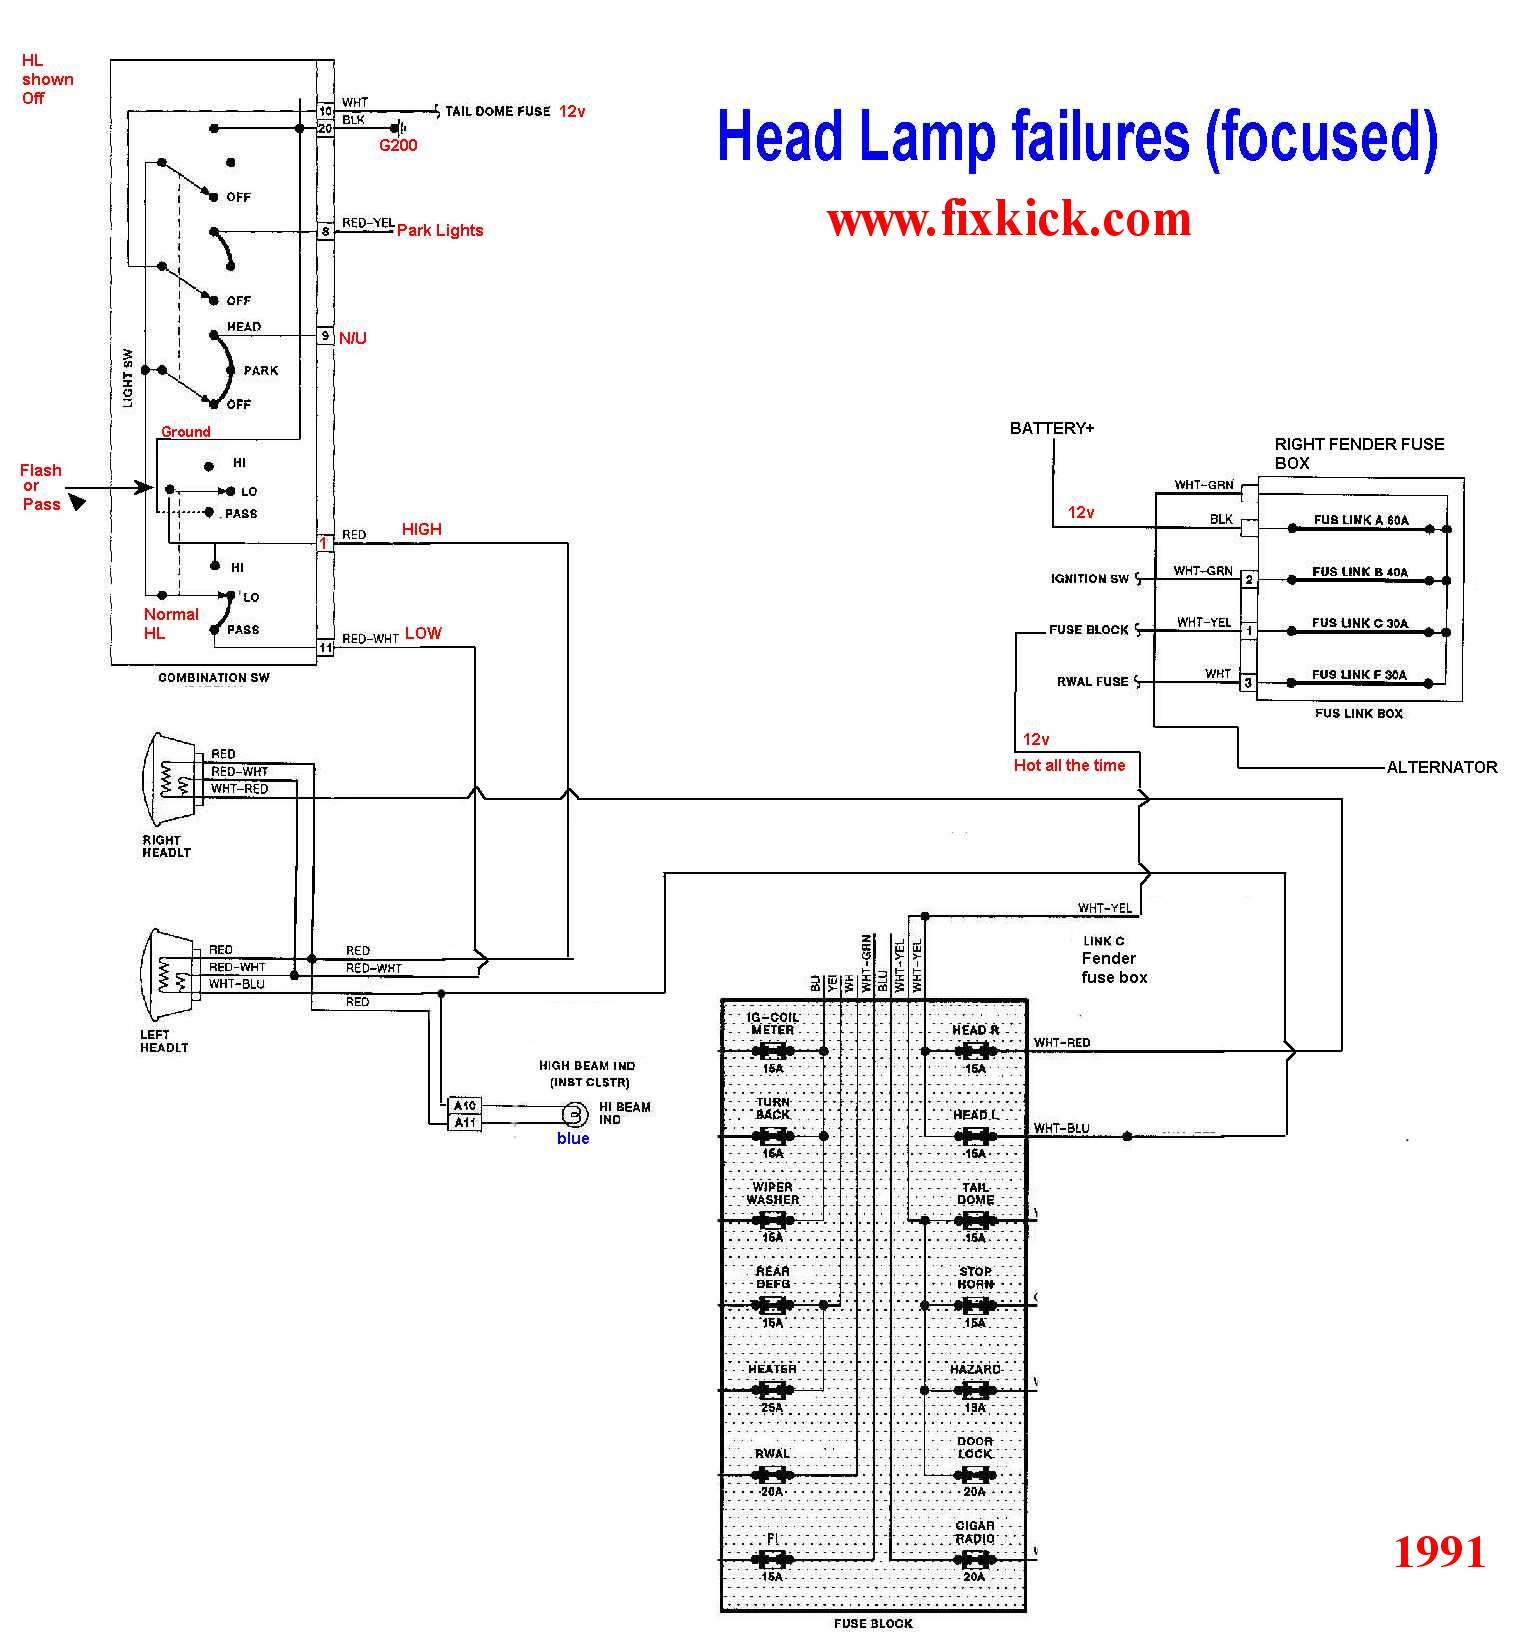 HL1A schematics to run engine Suzuki Motorcycle Wiring Diagrams at bayanpartner.co